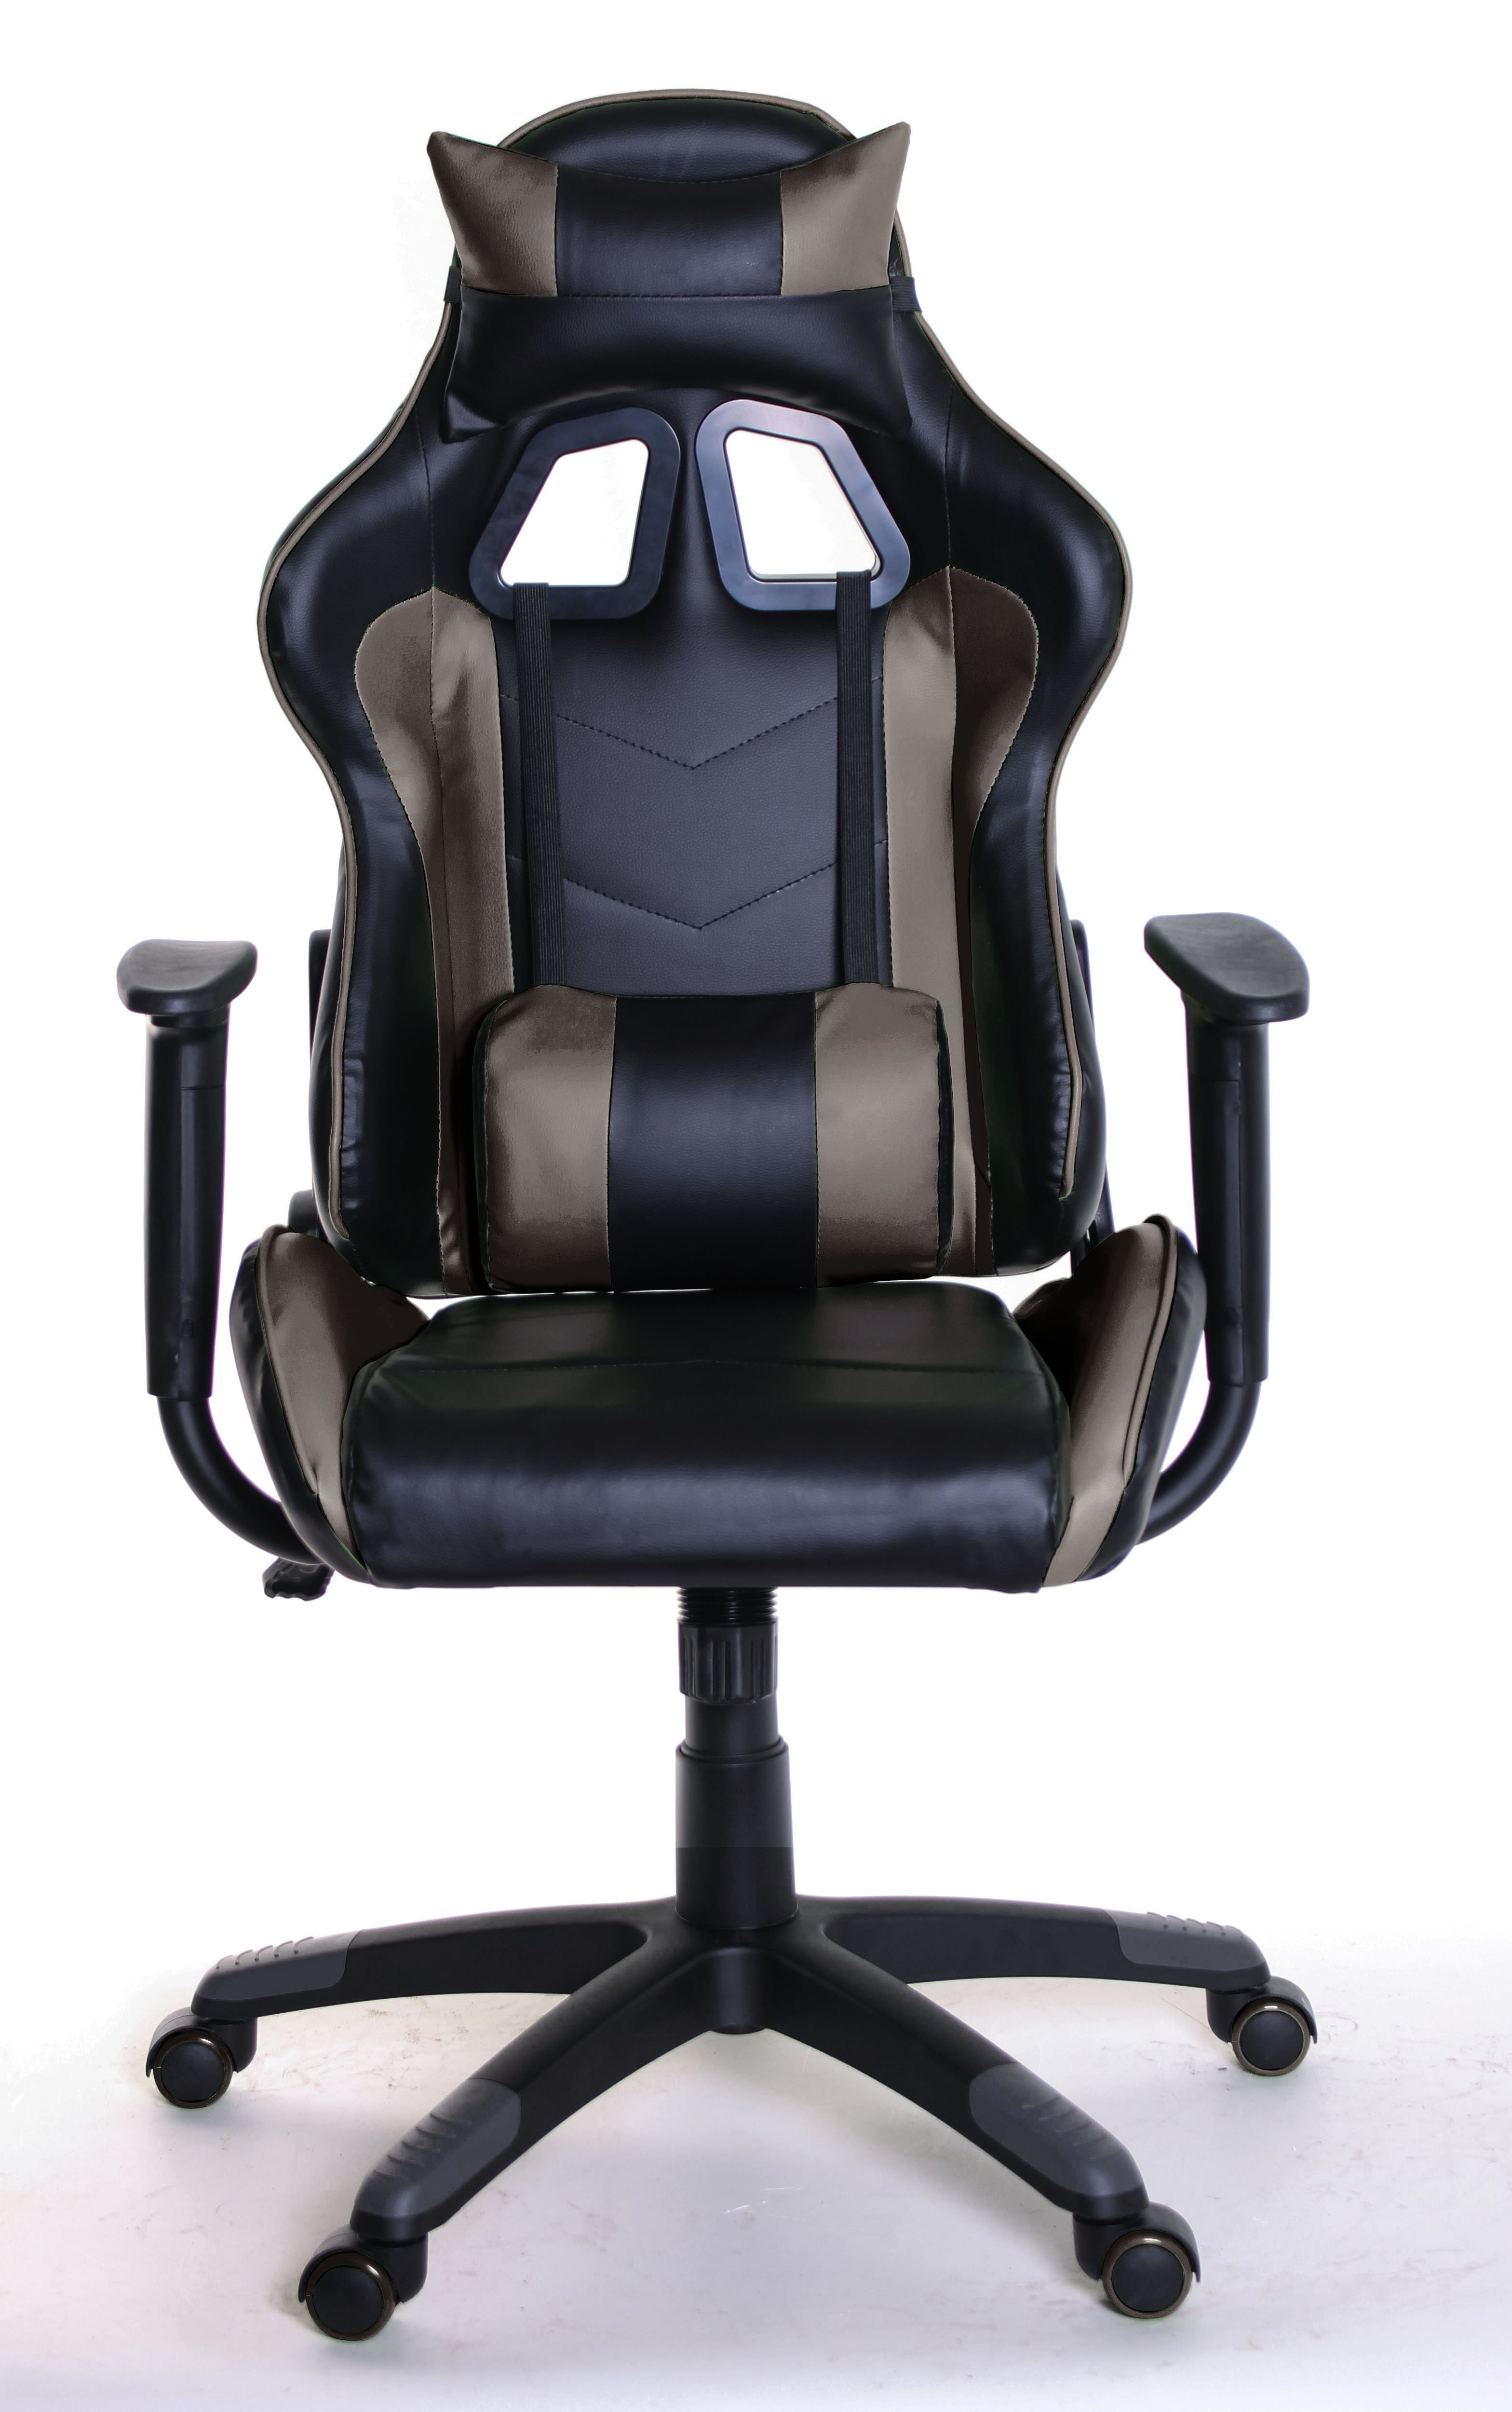 Timeoffice ergonomic gaming chair race car style with pu leather and